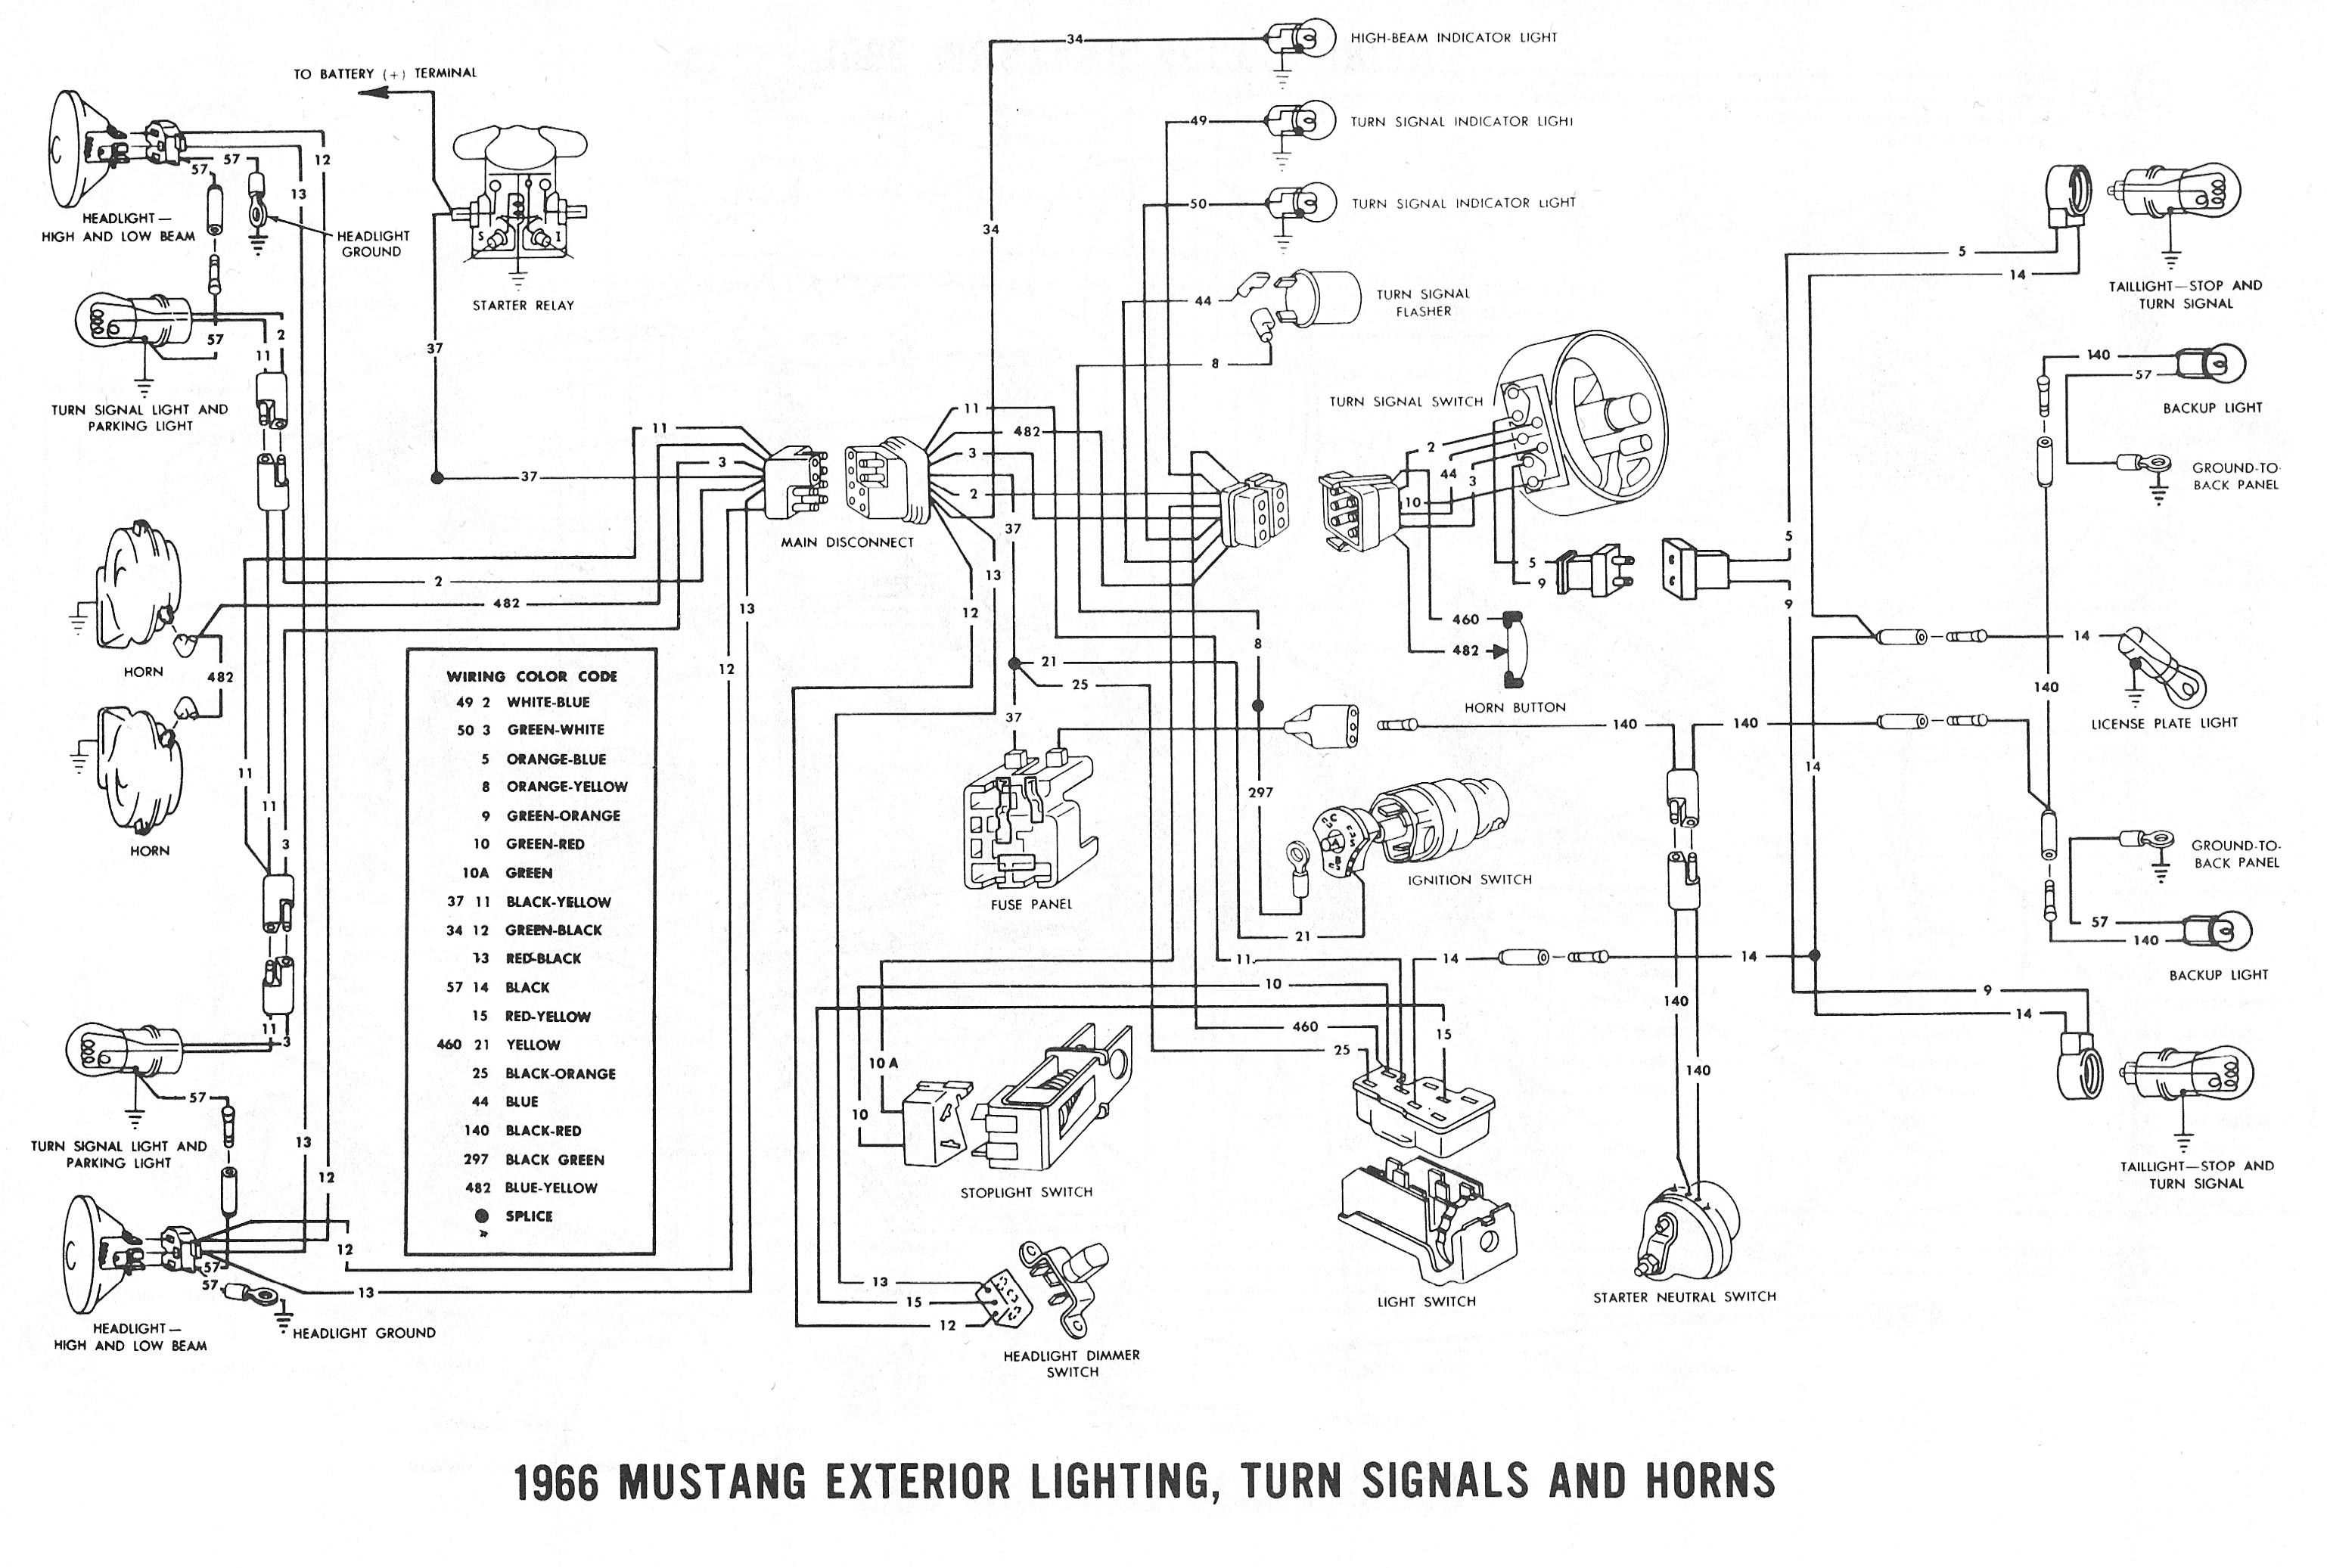 1972 Ford Mustang Wiring Diagram